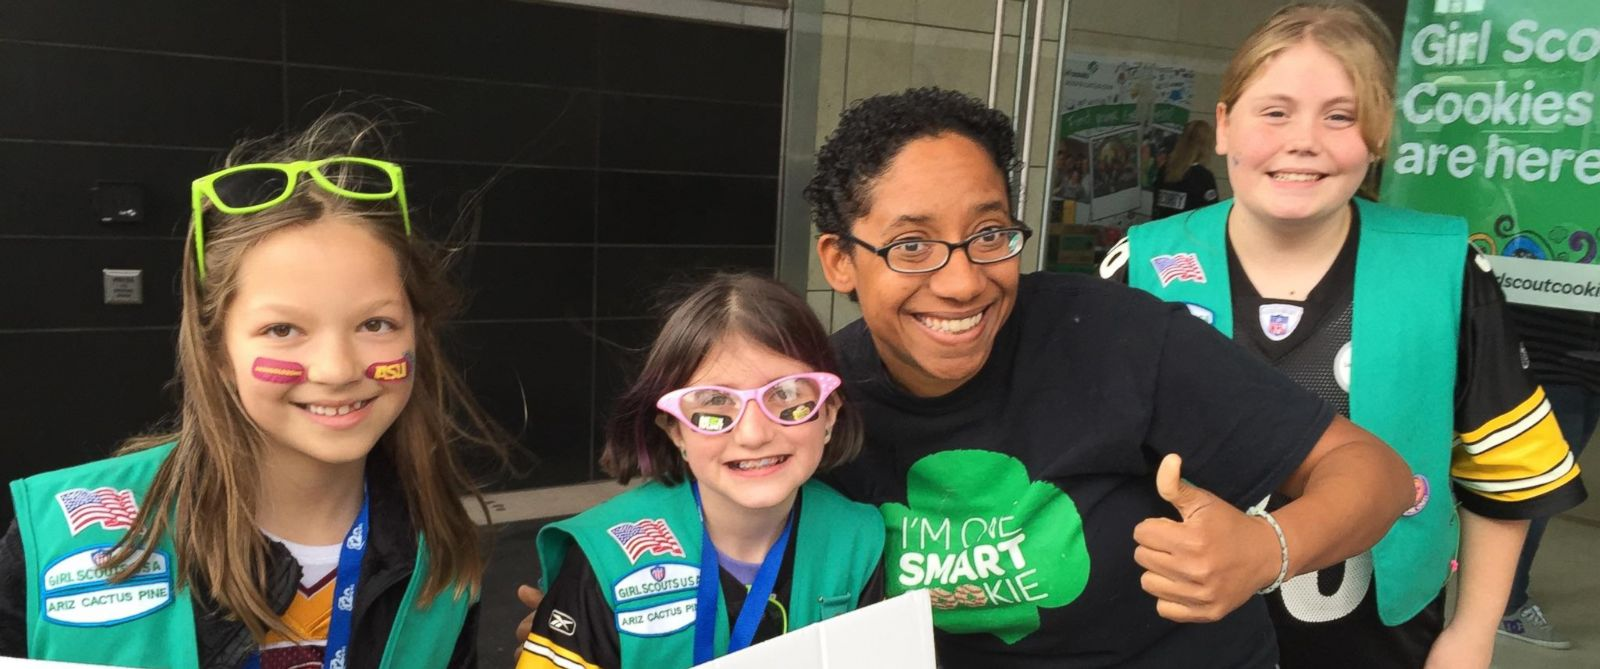 arizona girl scouts vying for world record of most cookies